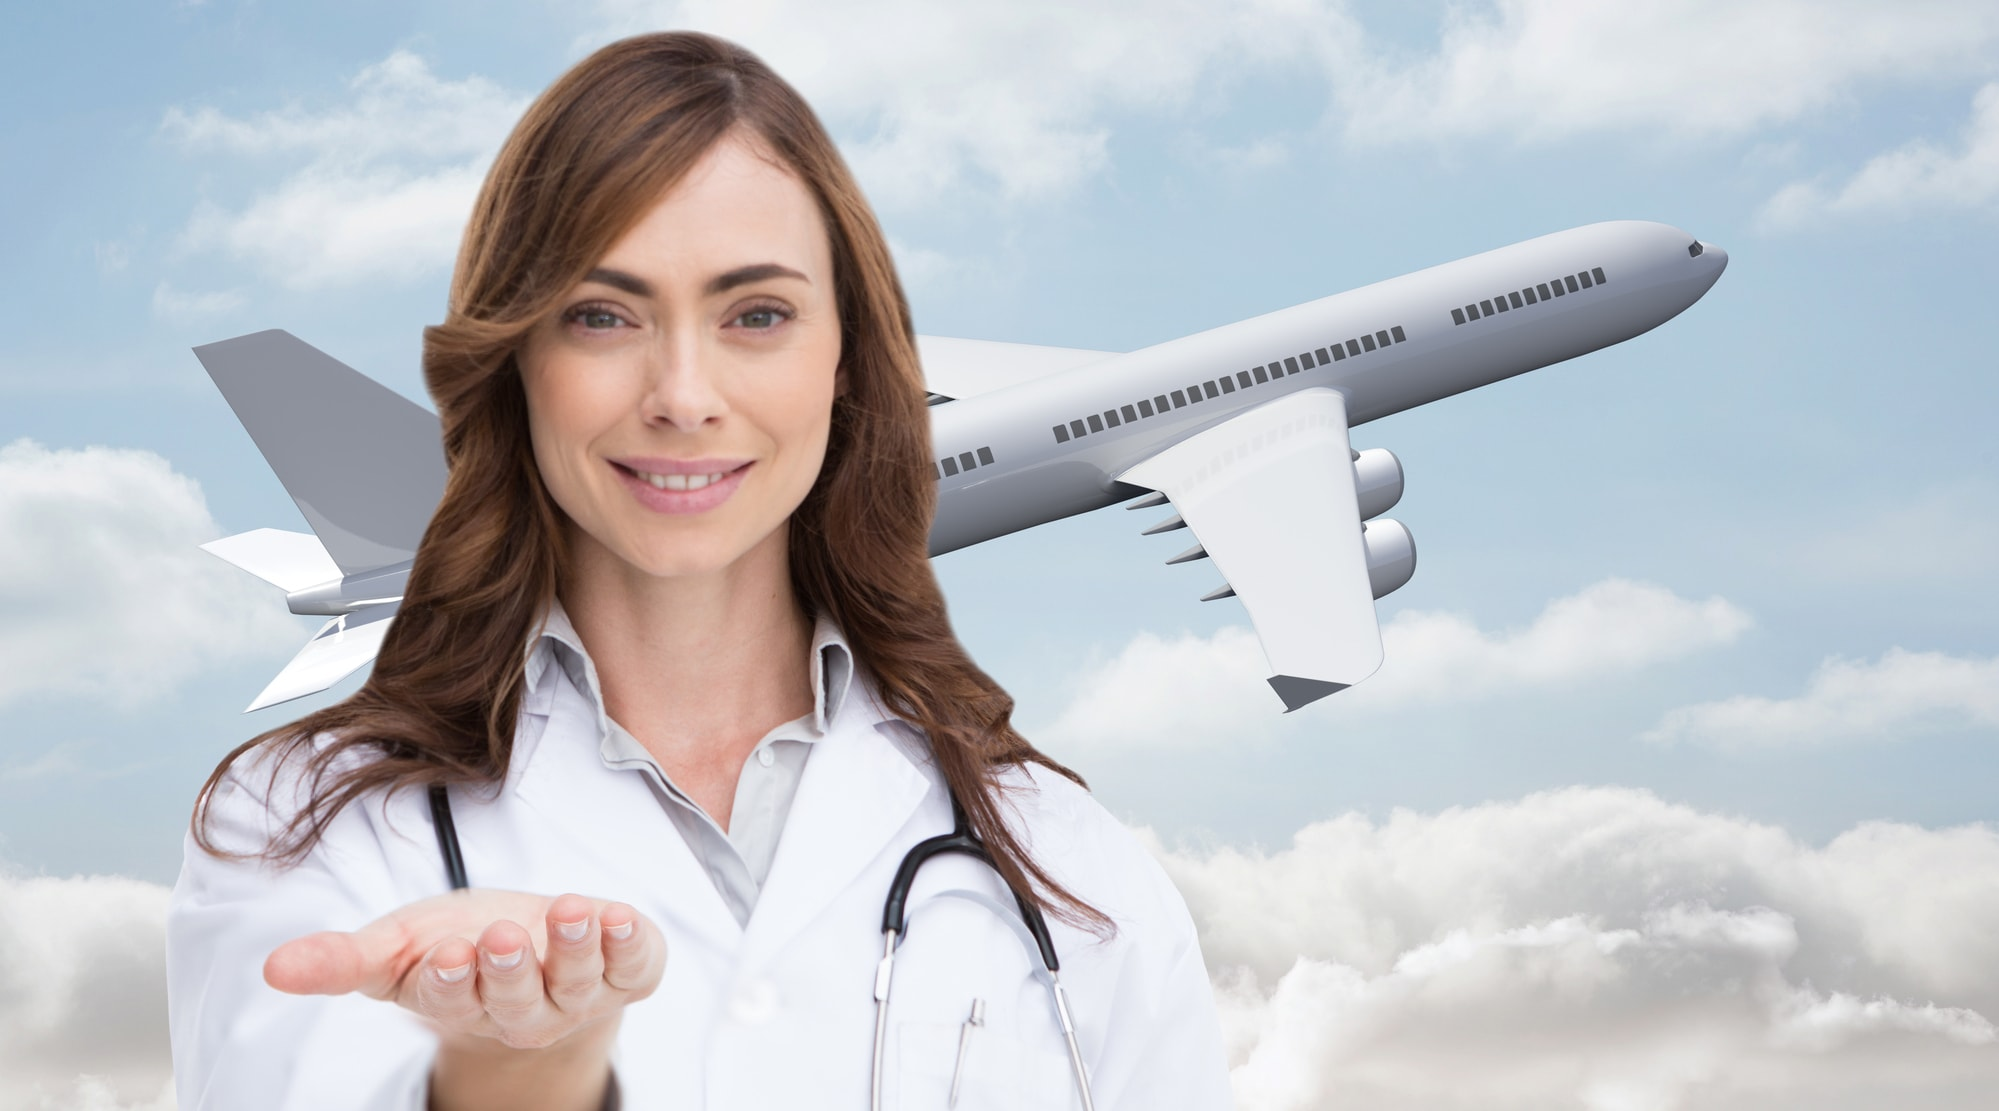 The possible risks of traveling abroad for medical tourism